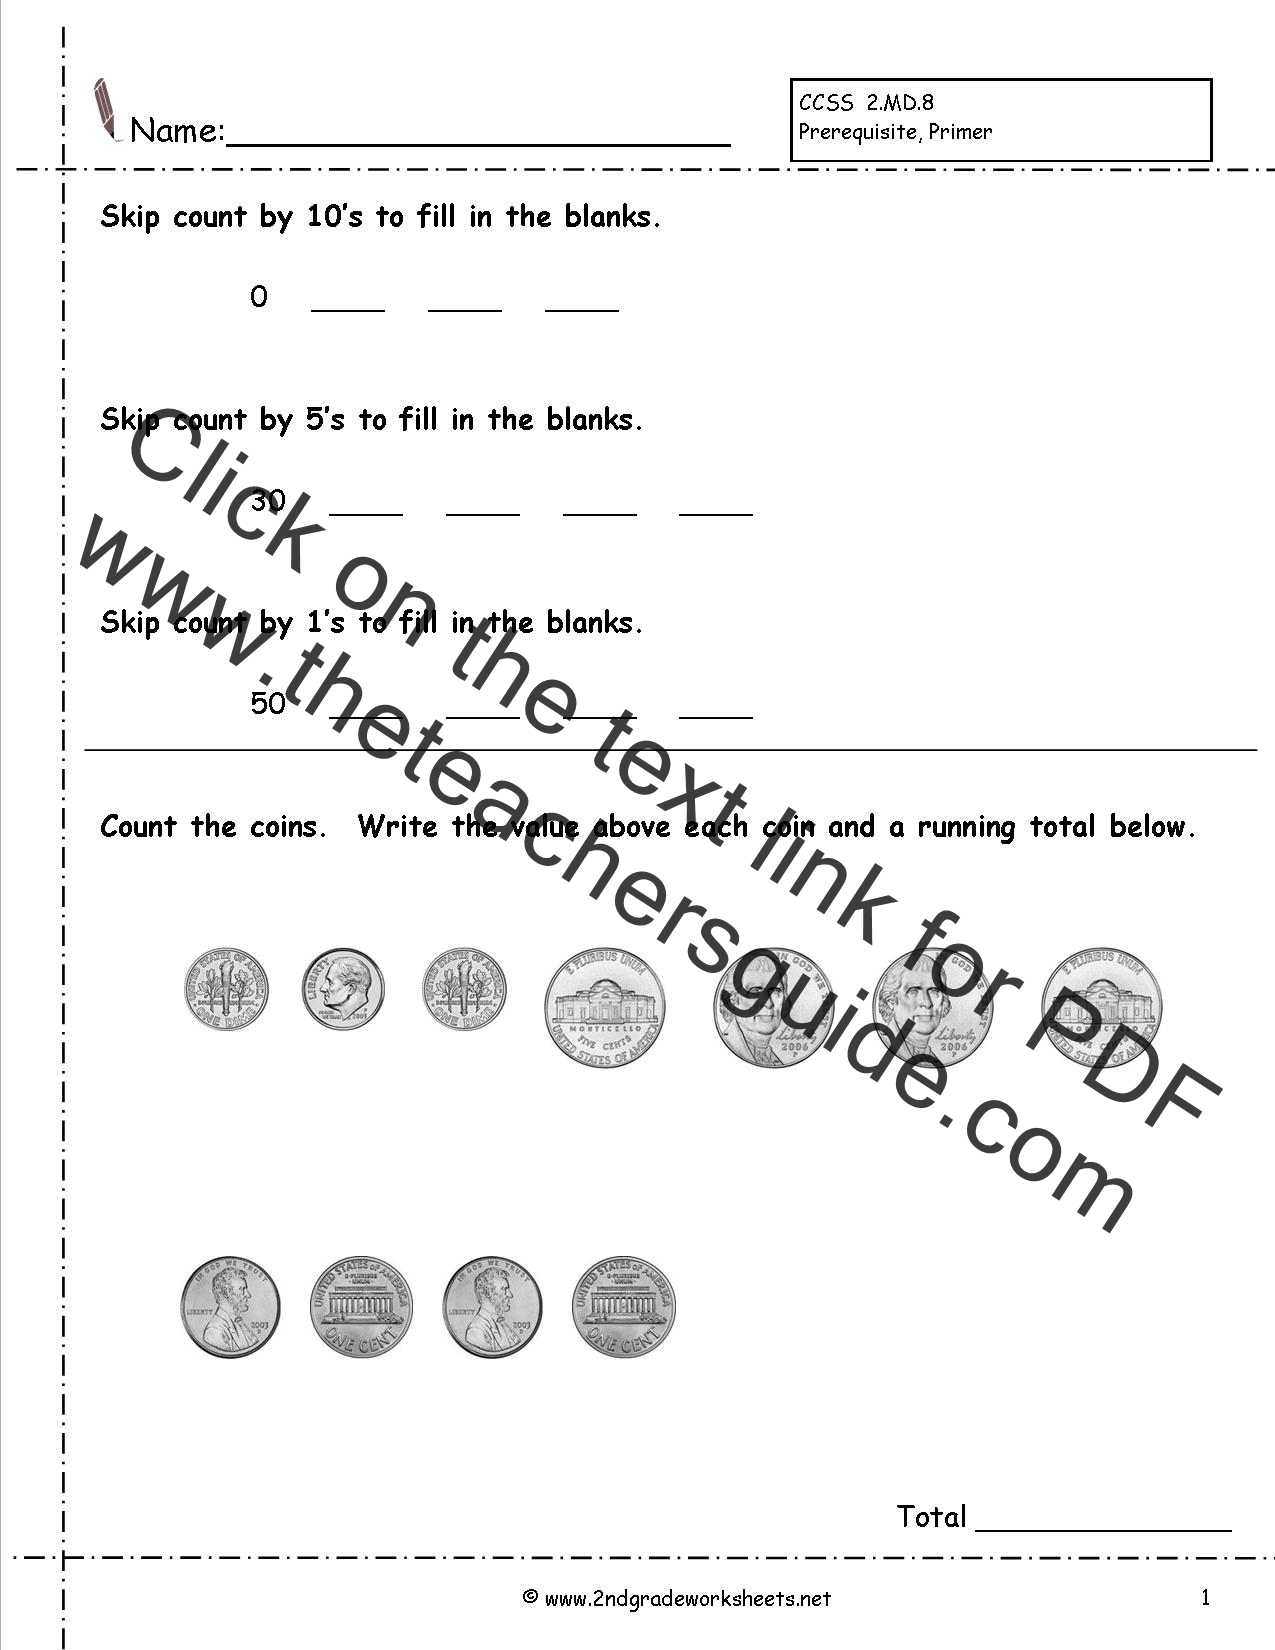 Counting Money Worksheet Uk